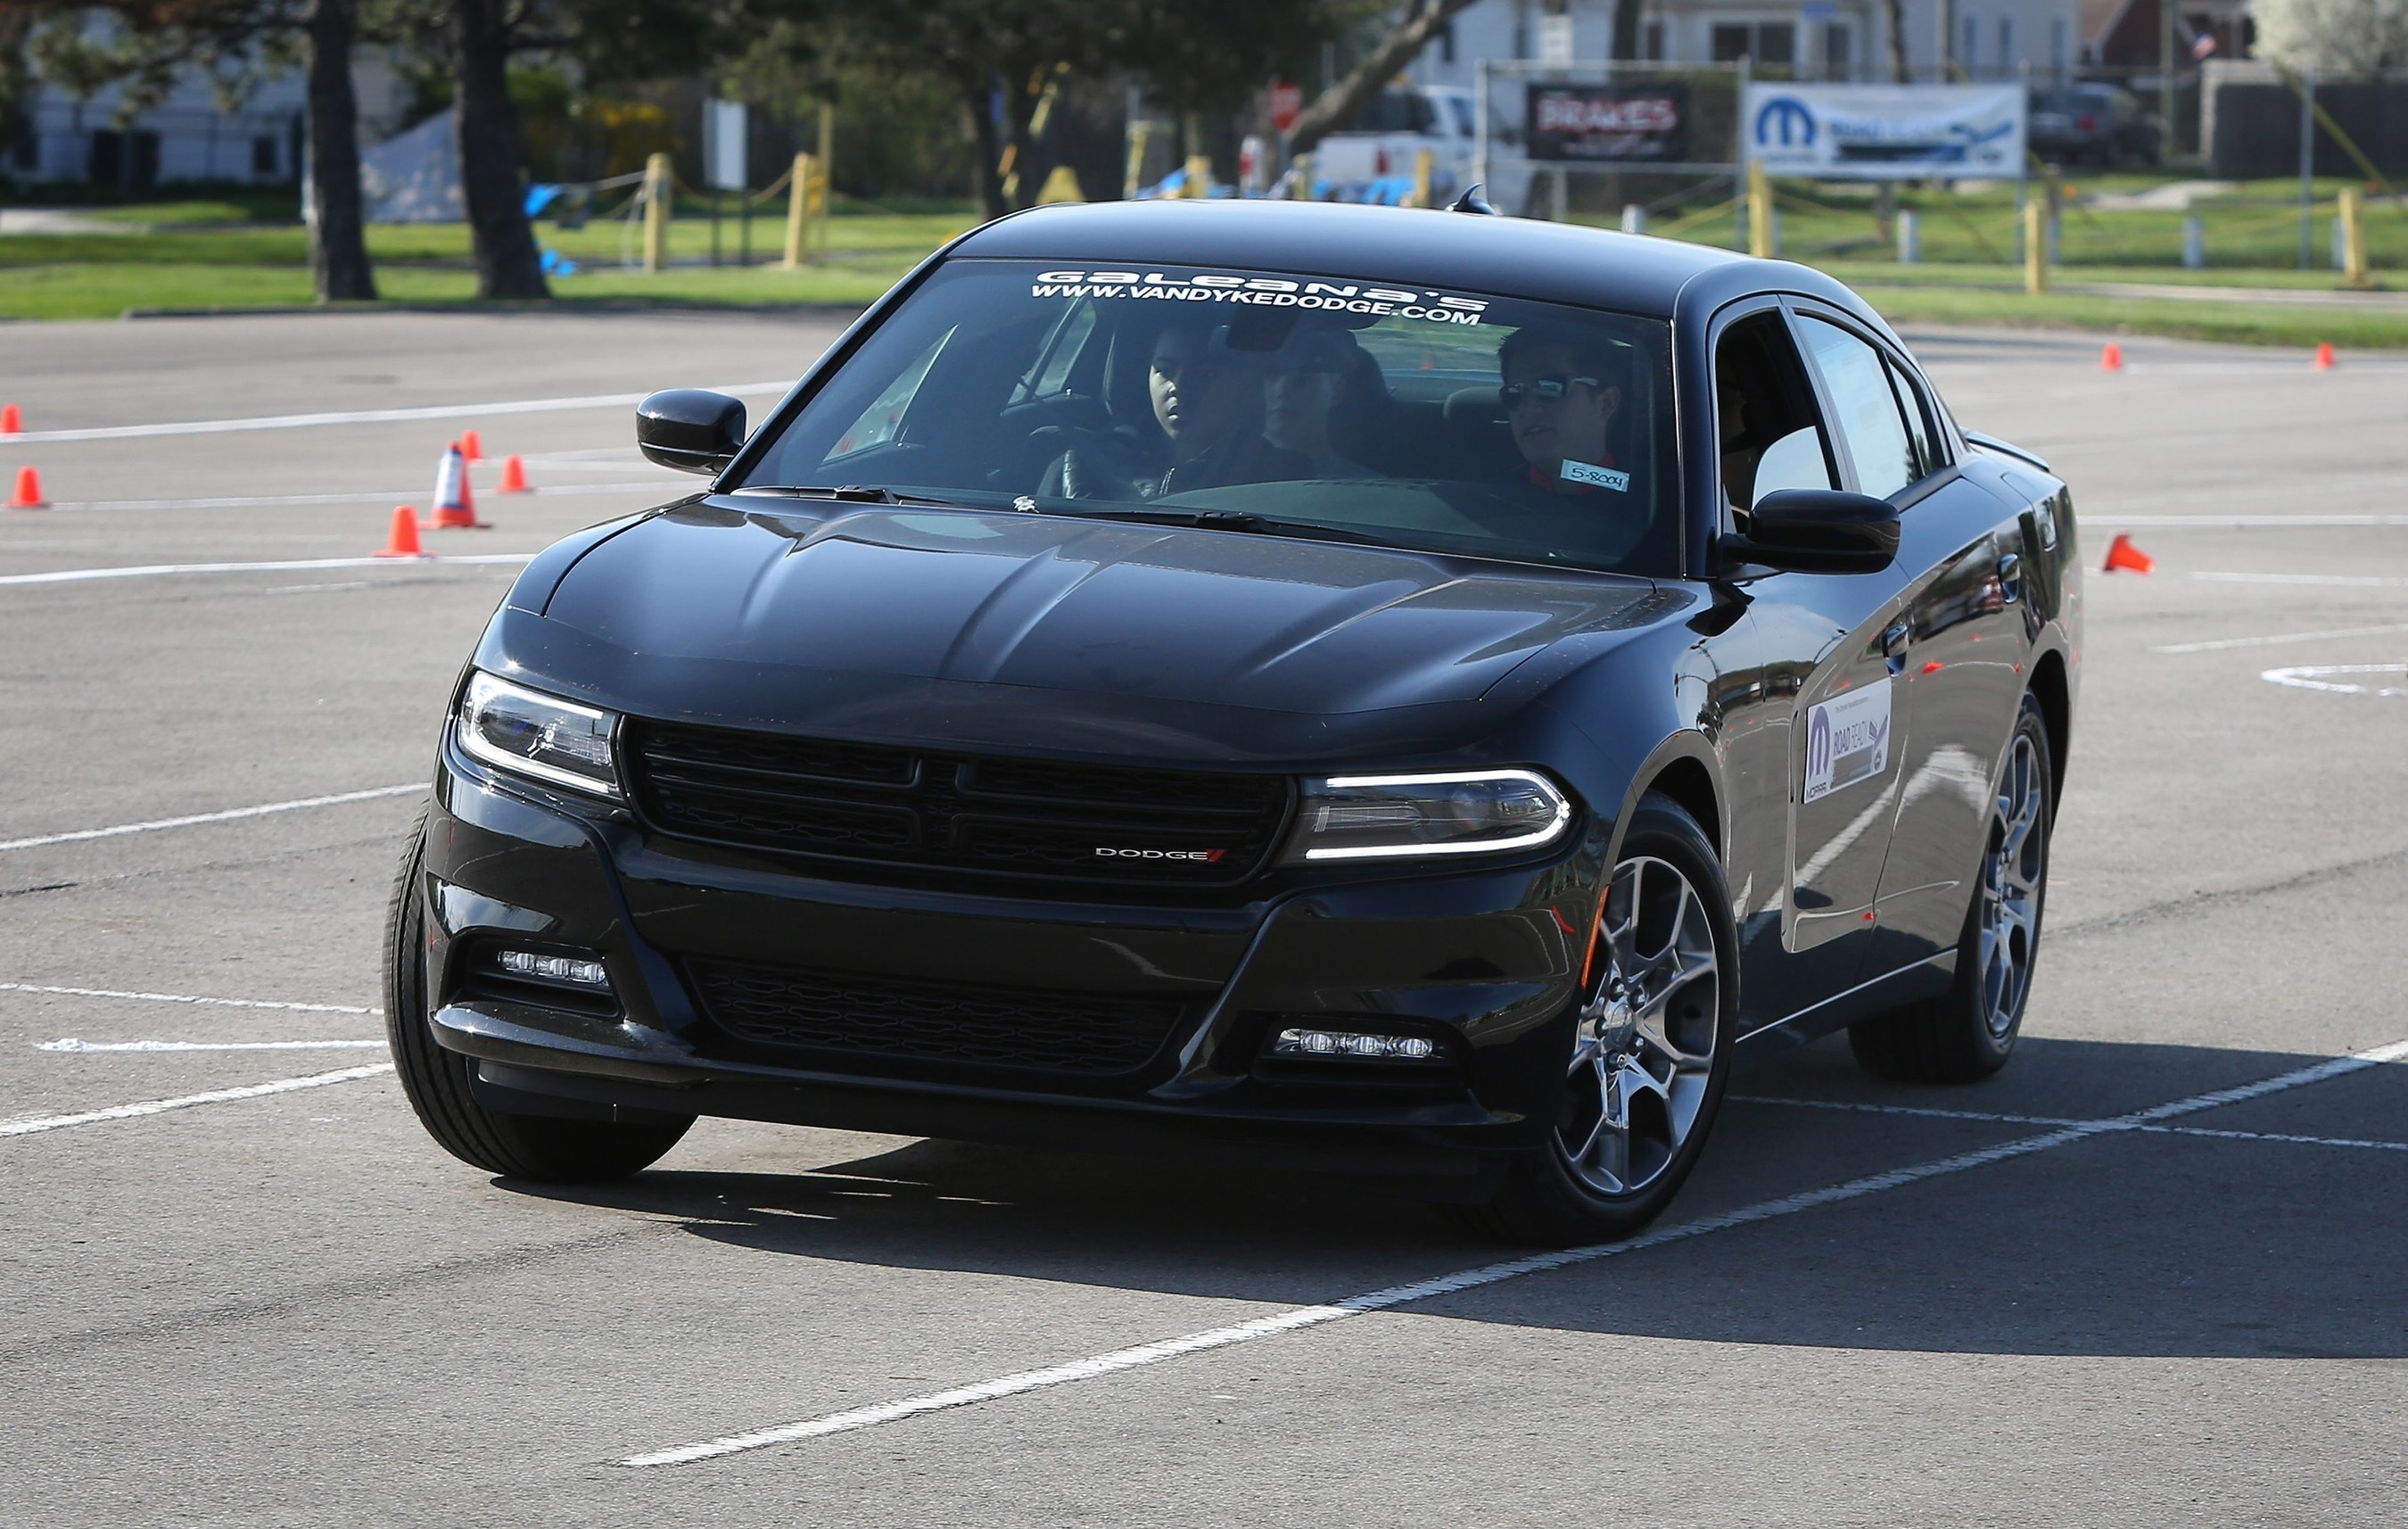 """The """"Mopar Road Ready Powered by Dodge"""" teen safe-driving program will make its first stop in Texas, at the Circuit of The Americas facility in Austin on December 3-4."""